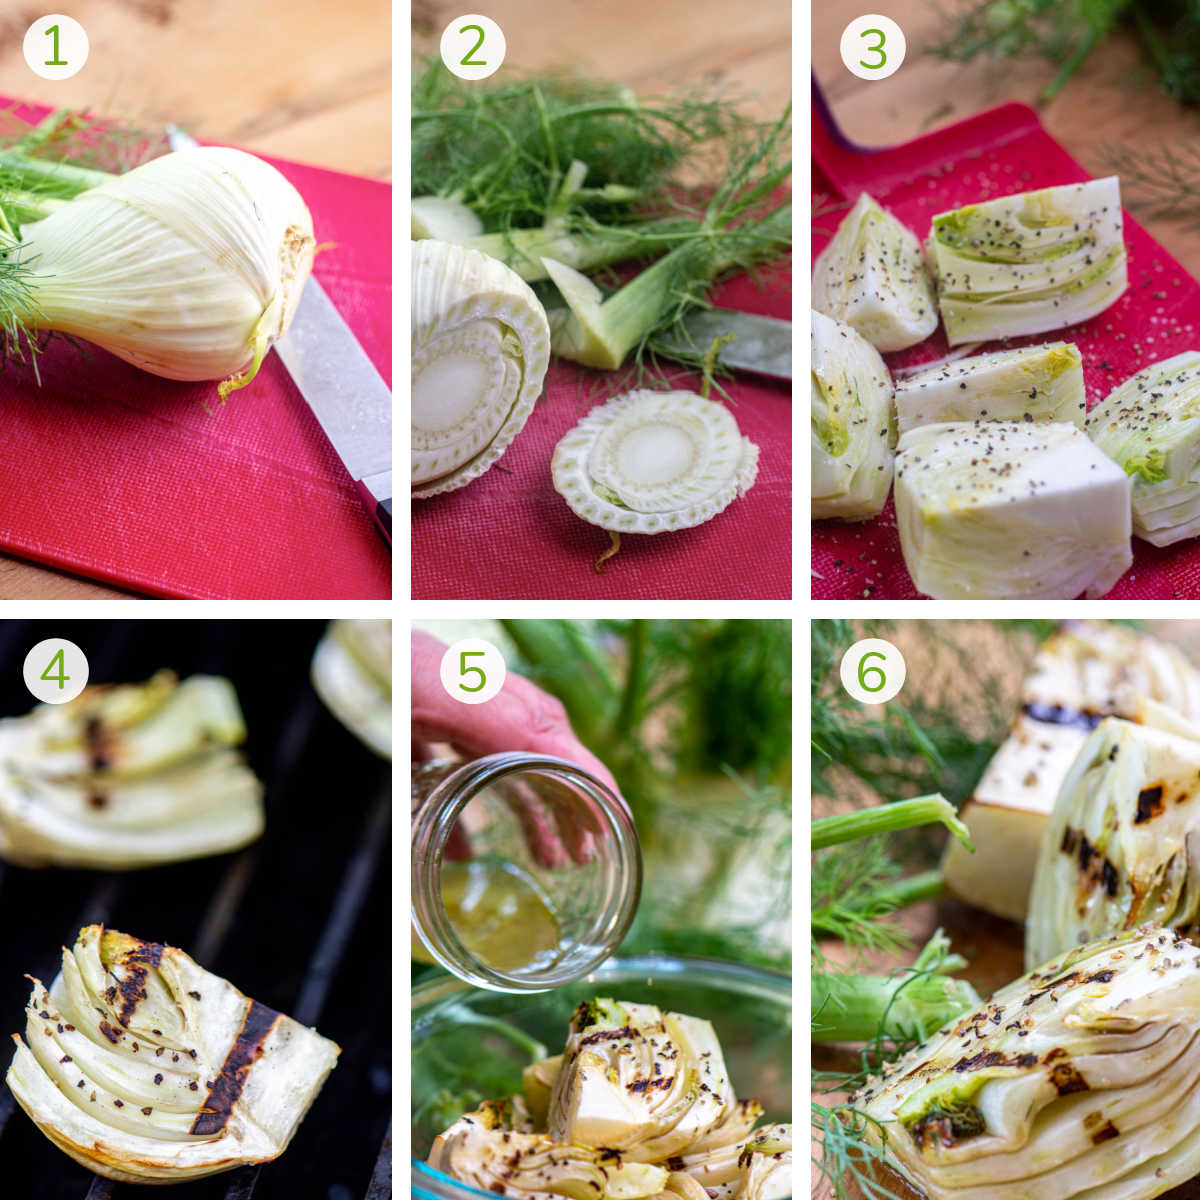 instruction photos showing how to trim the fennel bulb, quartering and seasoning it, grilling and adding the vinaigrette.